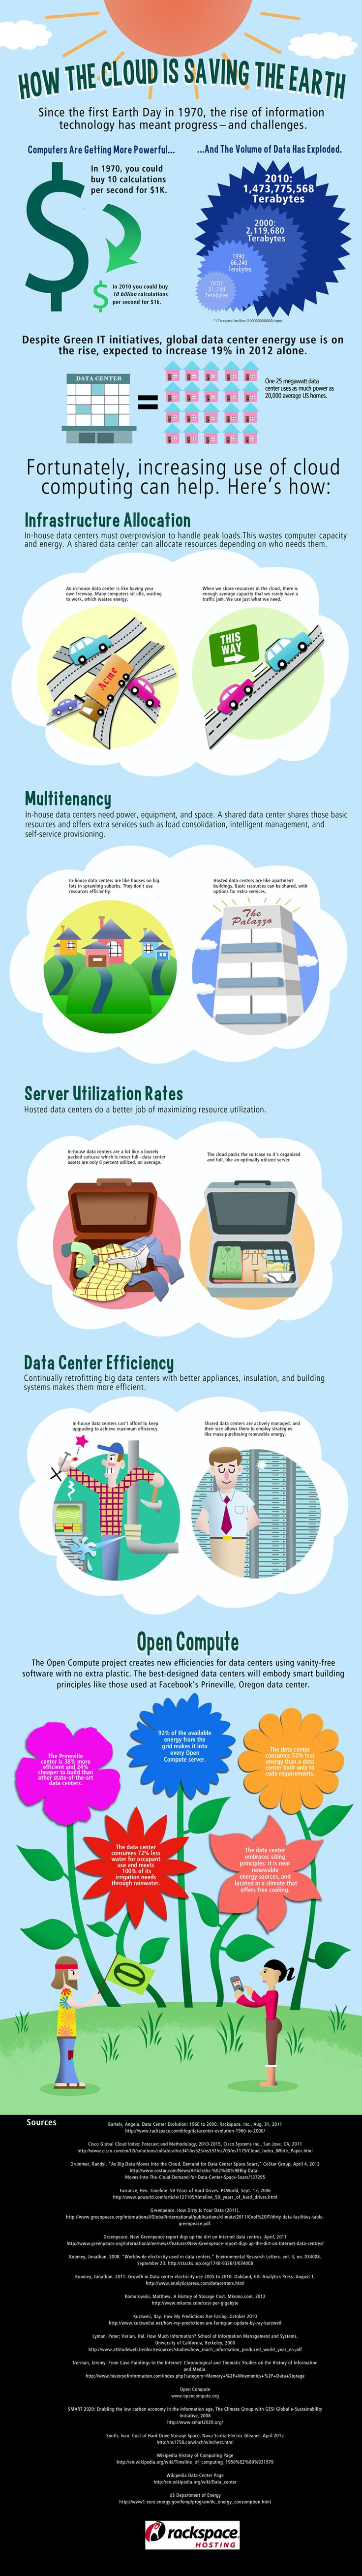 How Cloud Computing is Saving the Earth - Infographic